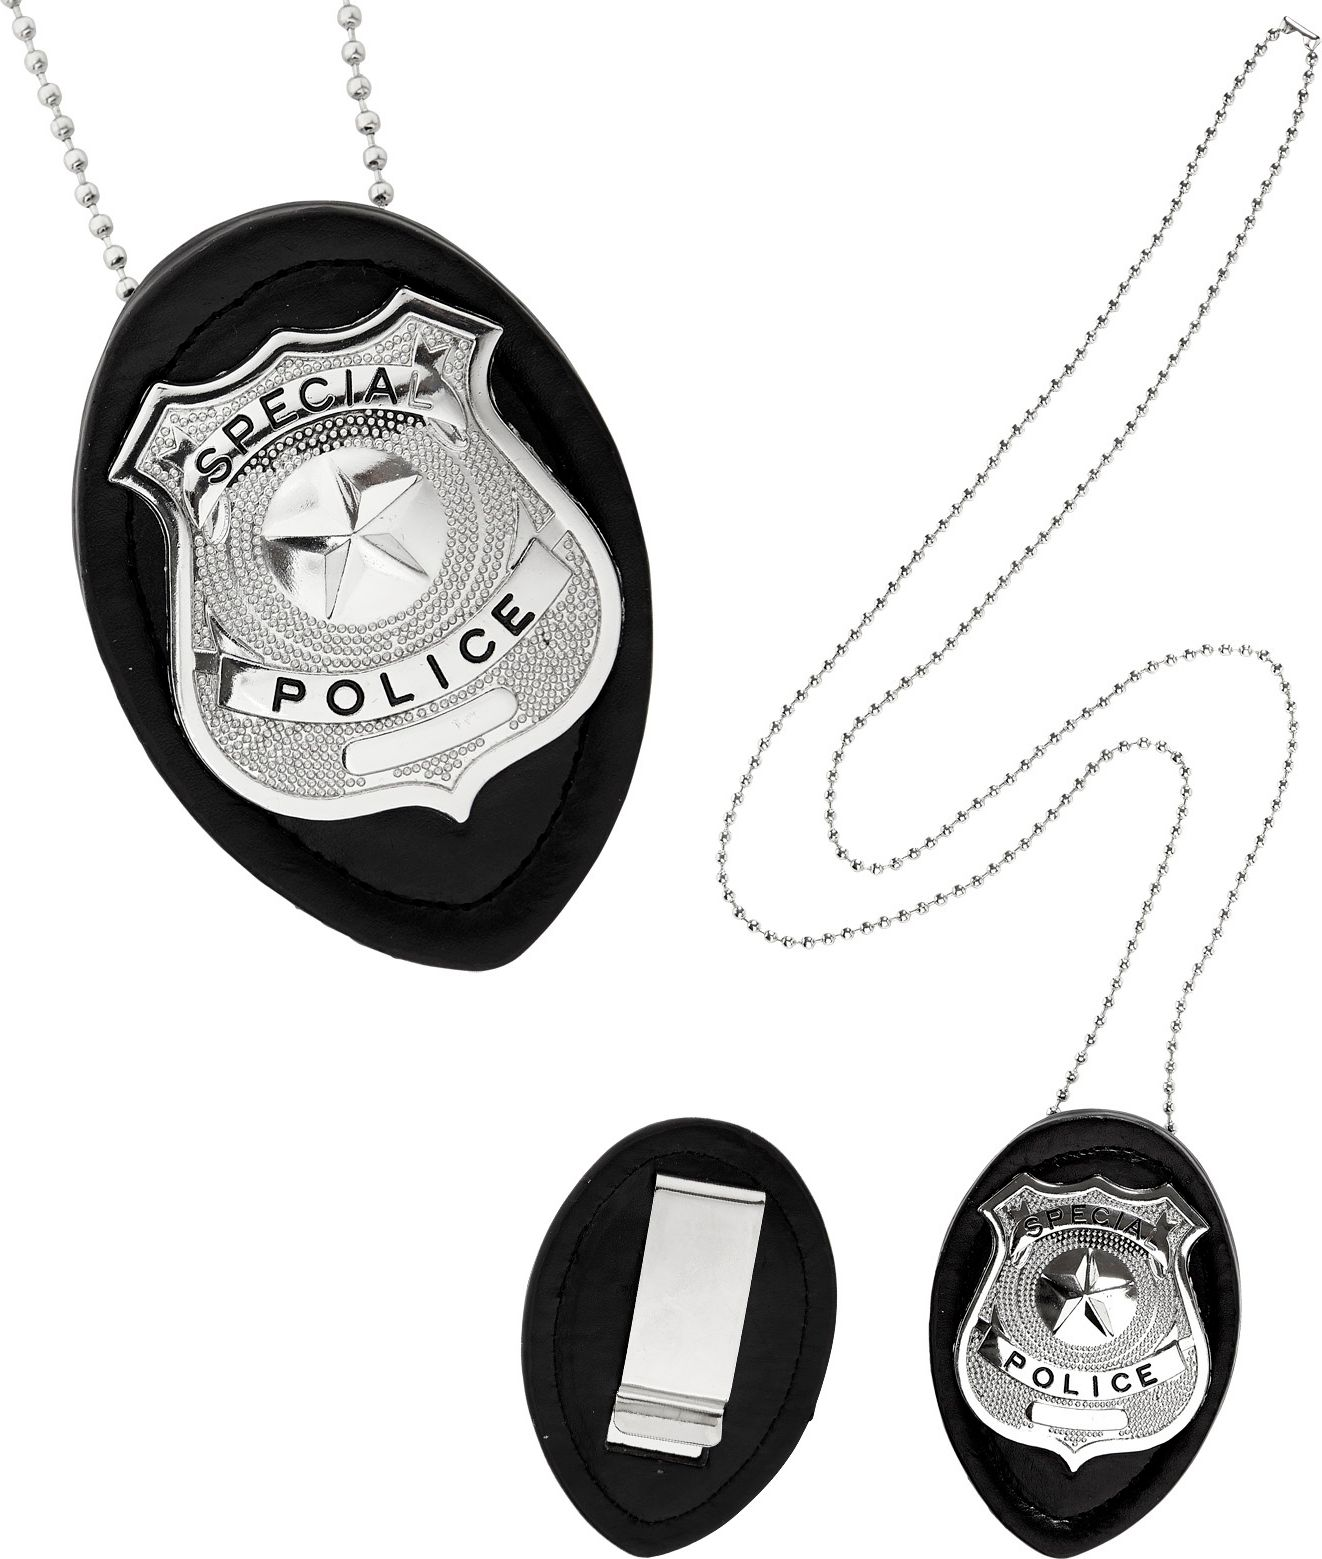 Sheriff ster ketting